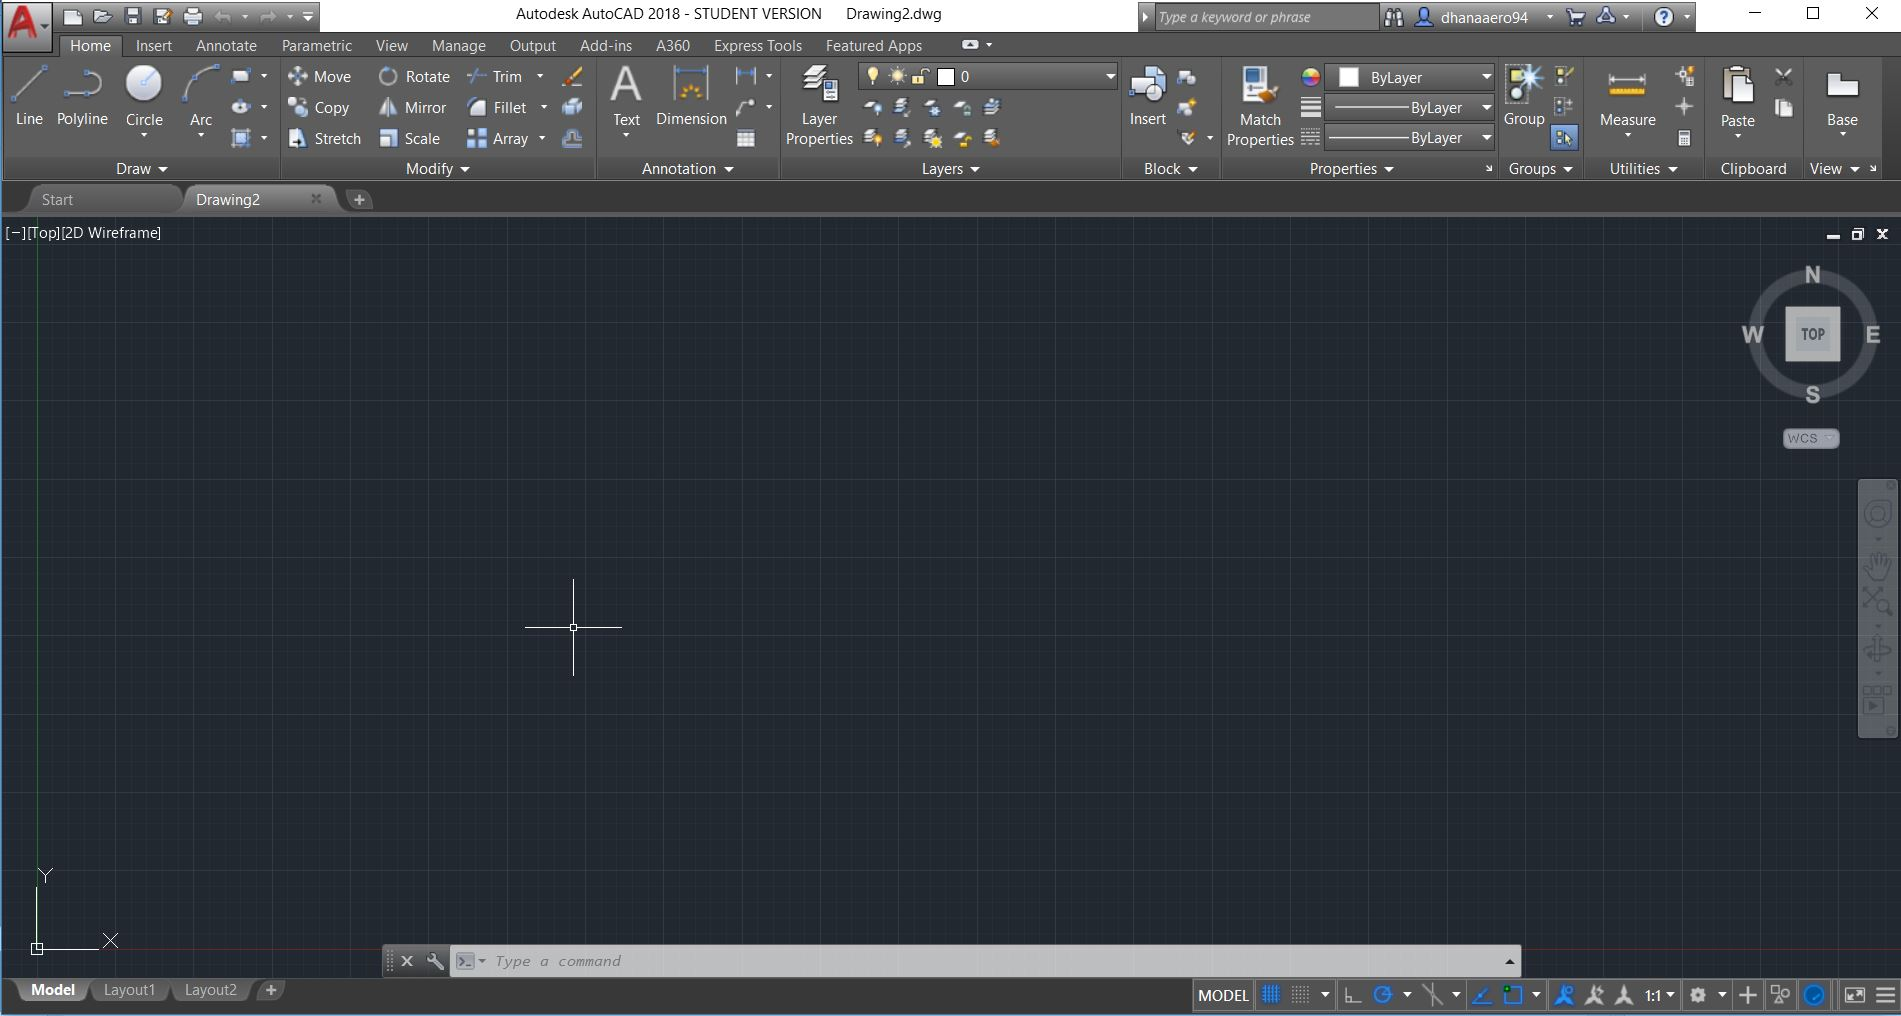 hight resolution of autocad gui contains ribbon tabs and command prompt to utilise the tools